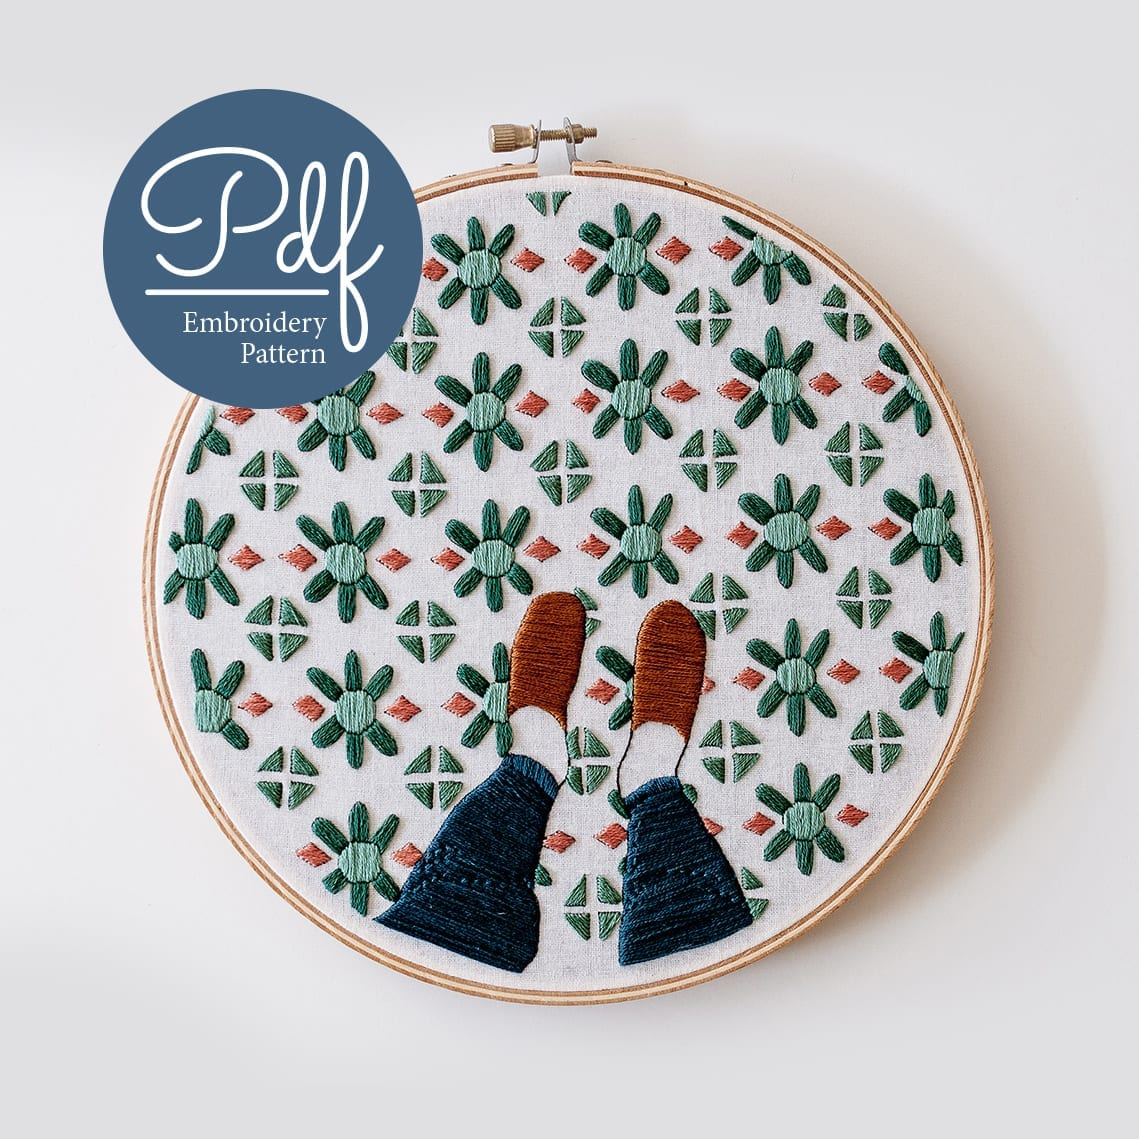 Fancy Feet Embroidery pattern PDF Digital Download & Embroidery Kit